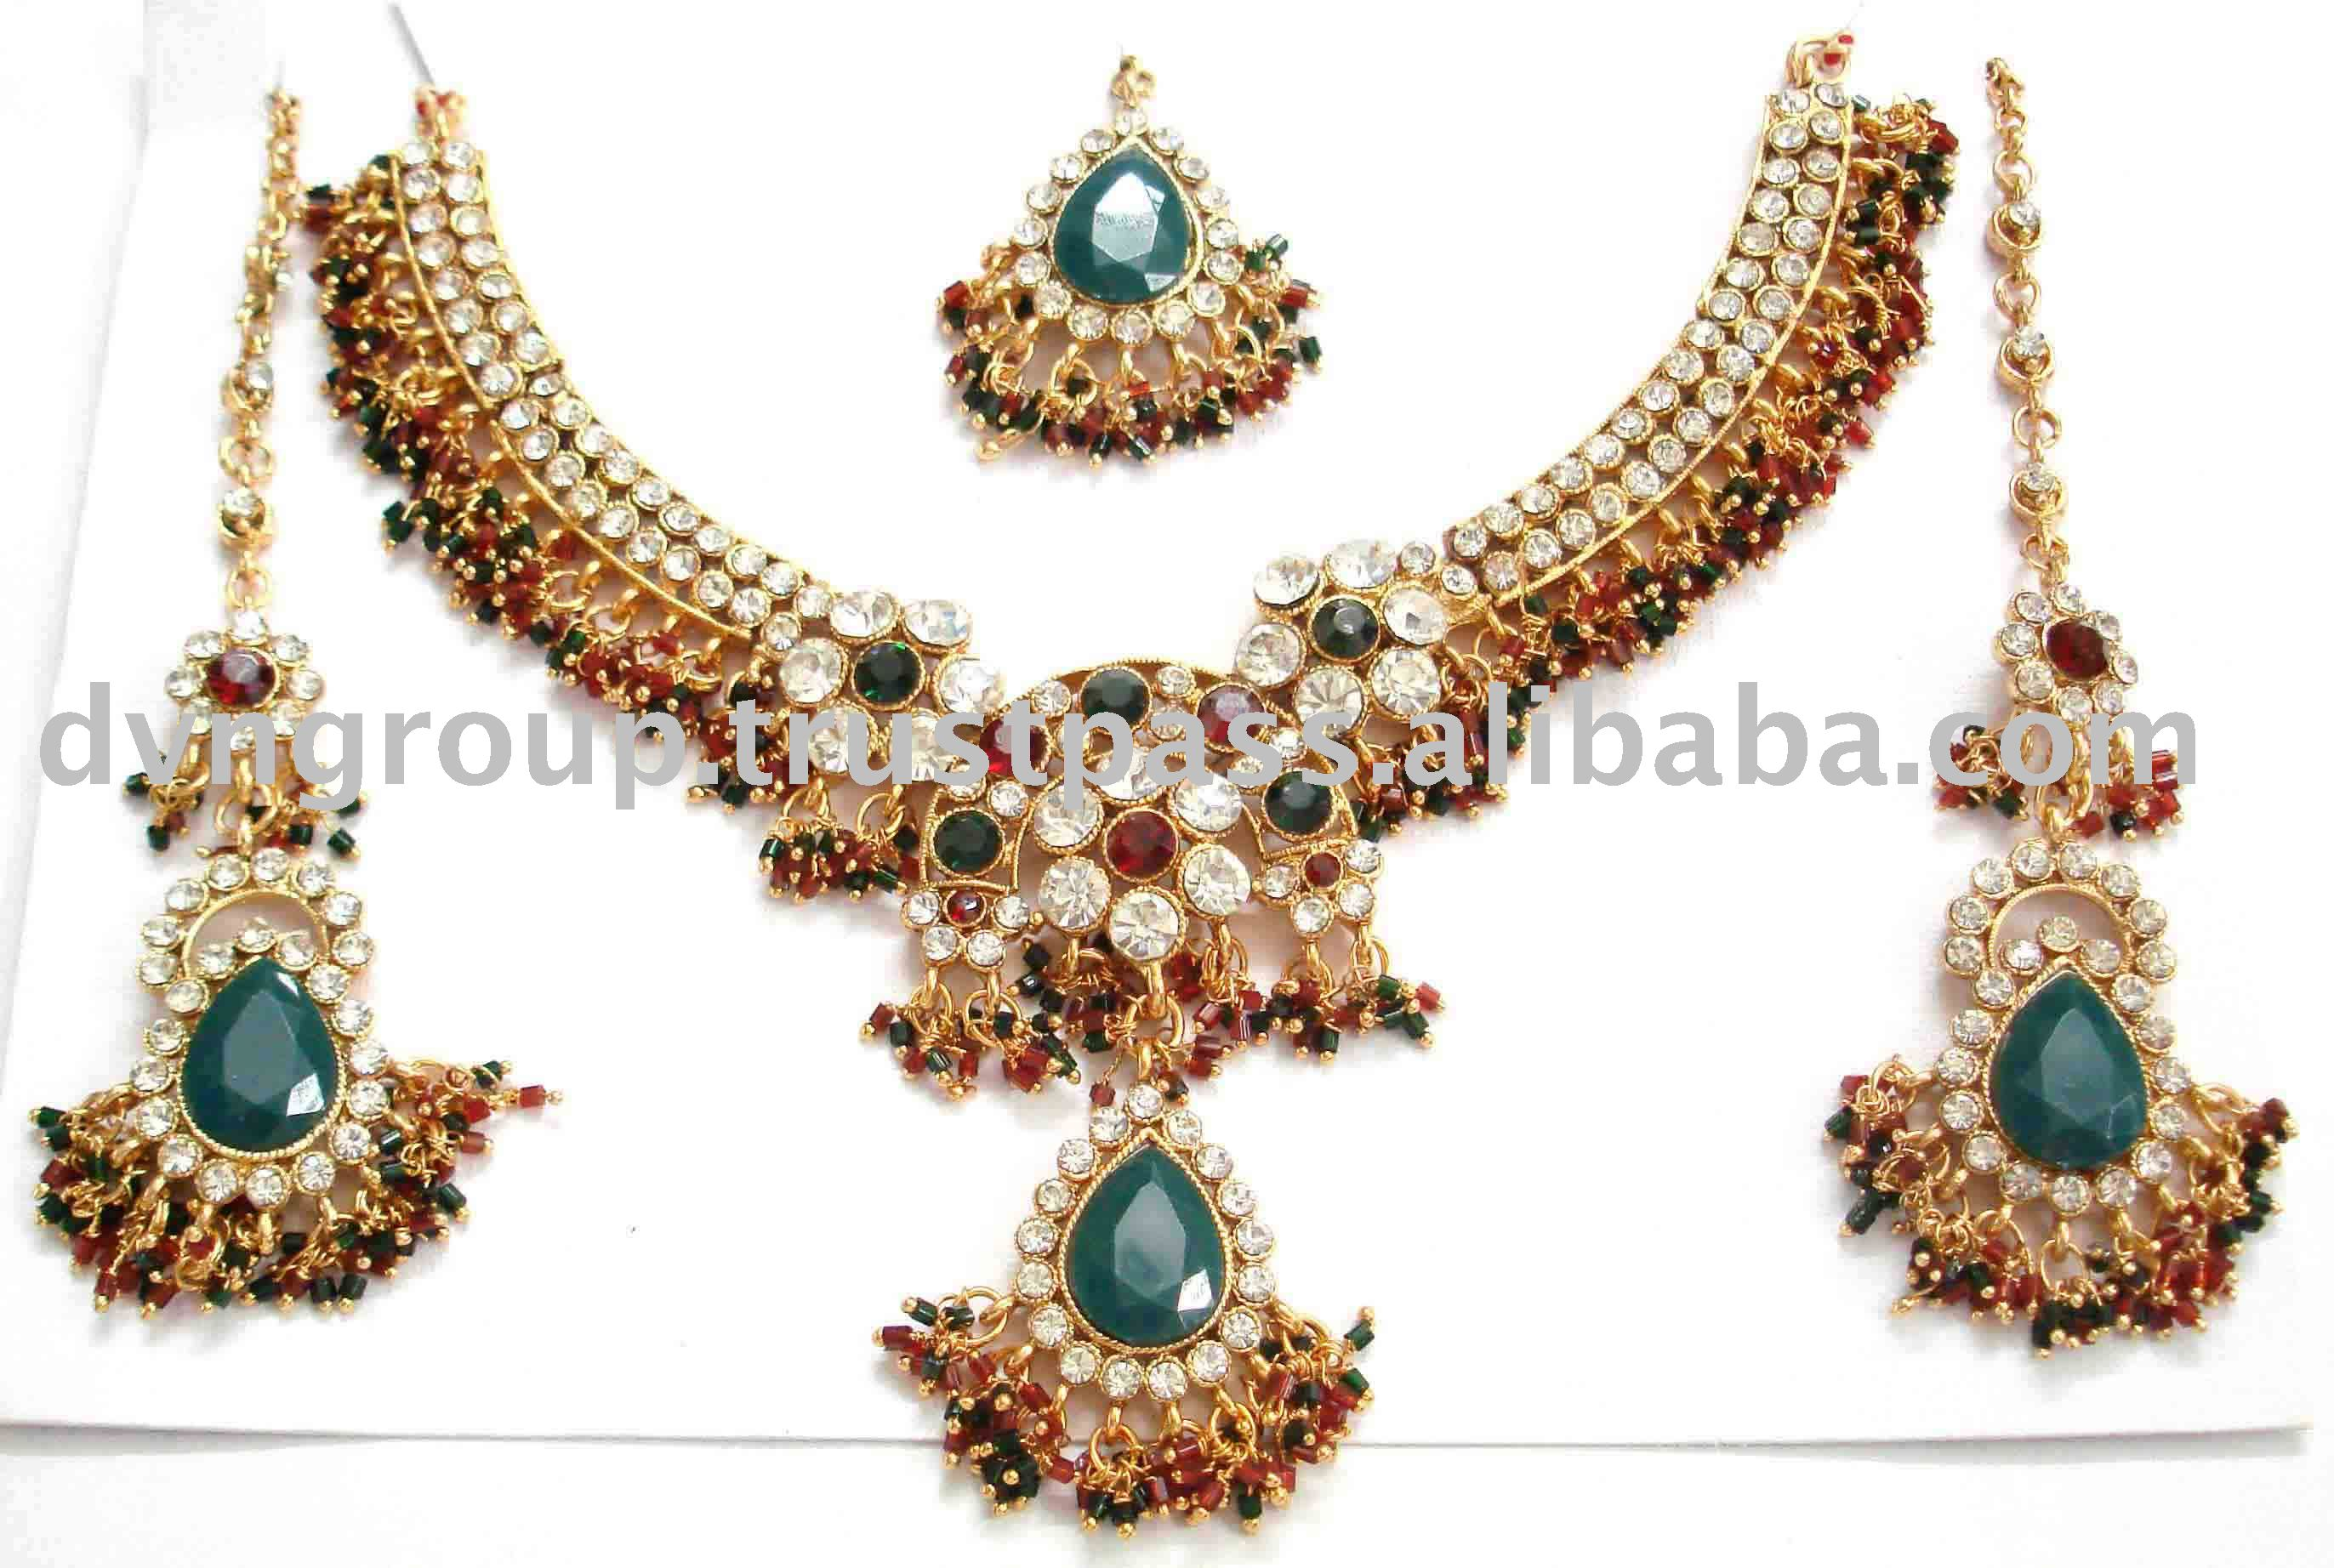 designer jewellery indian pinterest fkkkfdkdkeooiikkkkkkkkkkkk pin fashion jewelry nikah